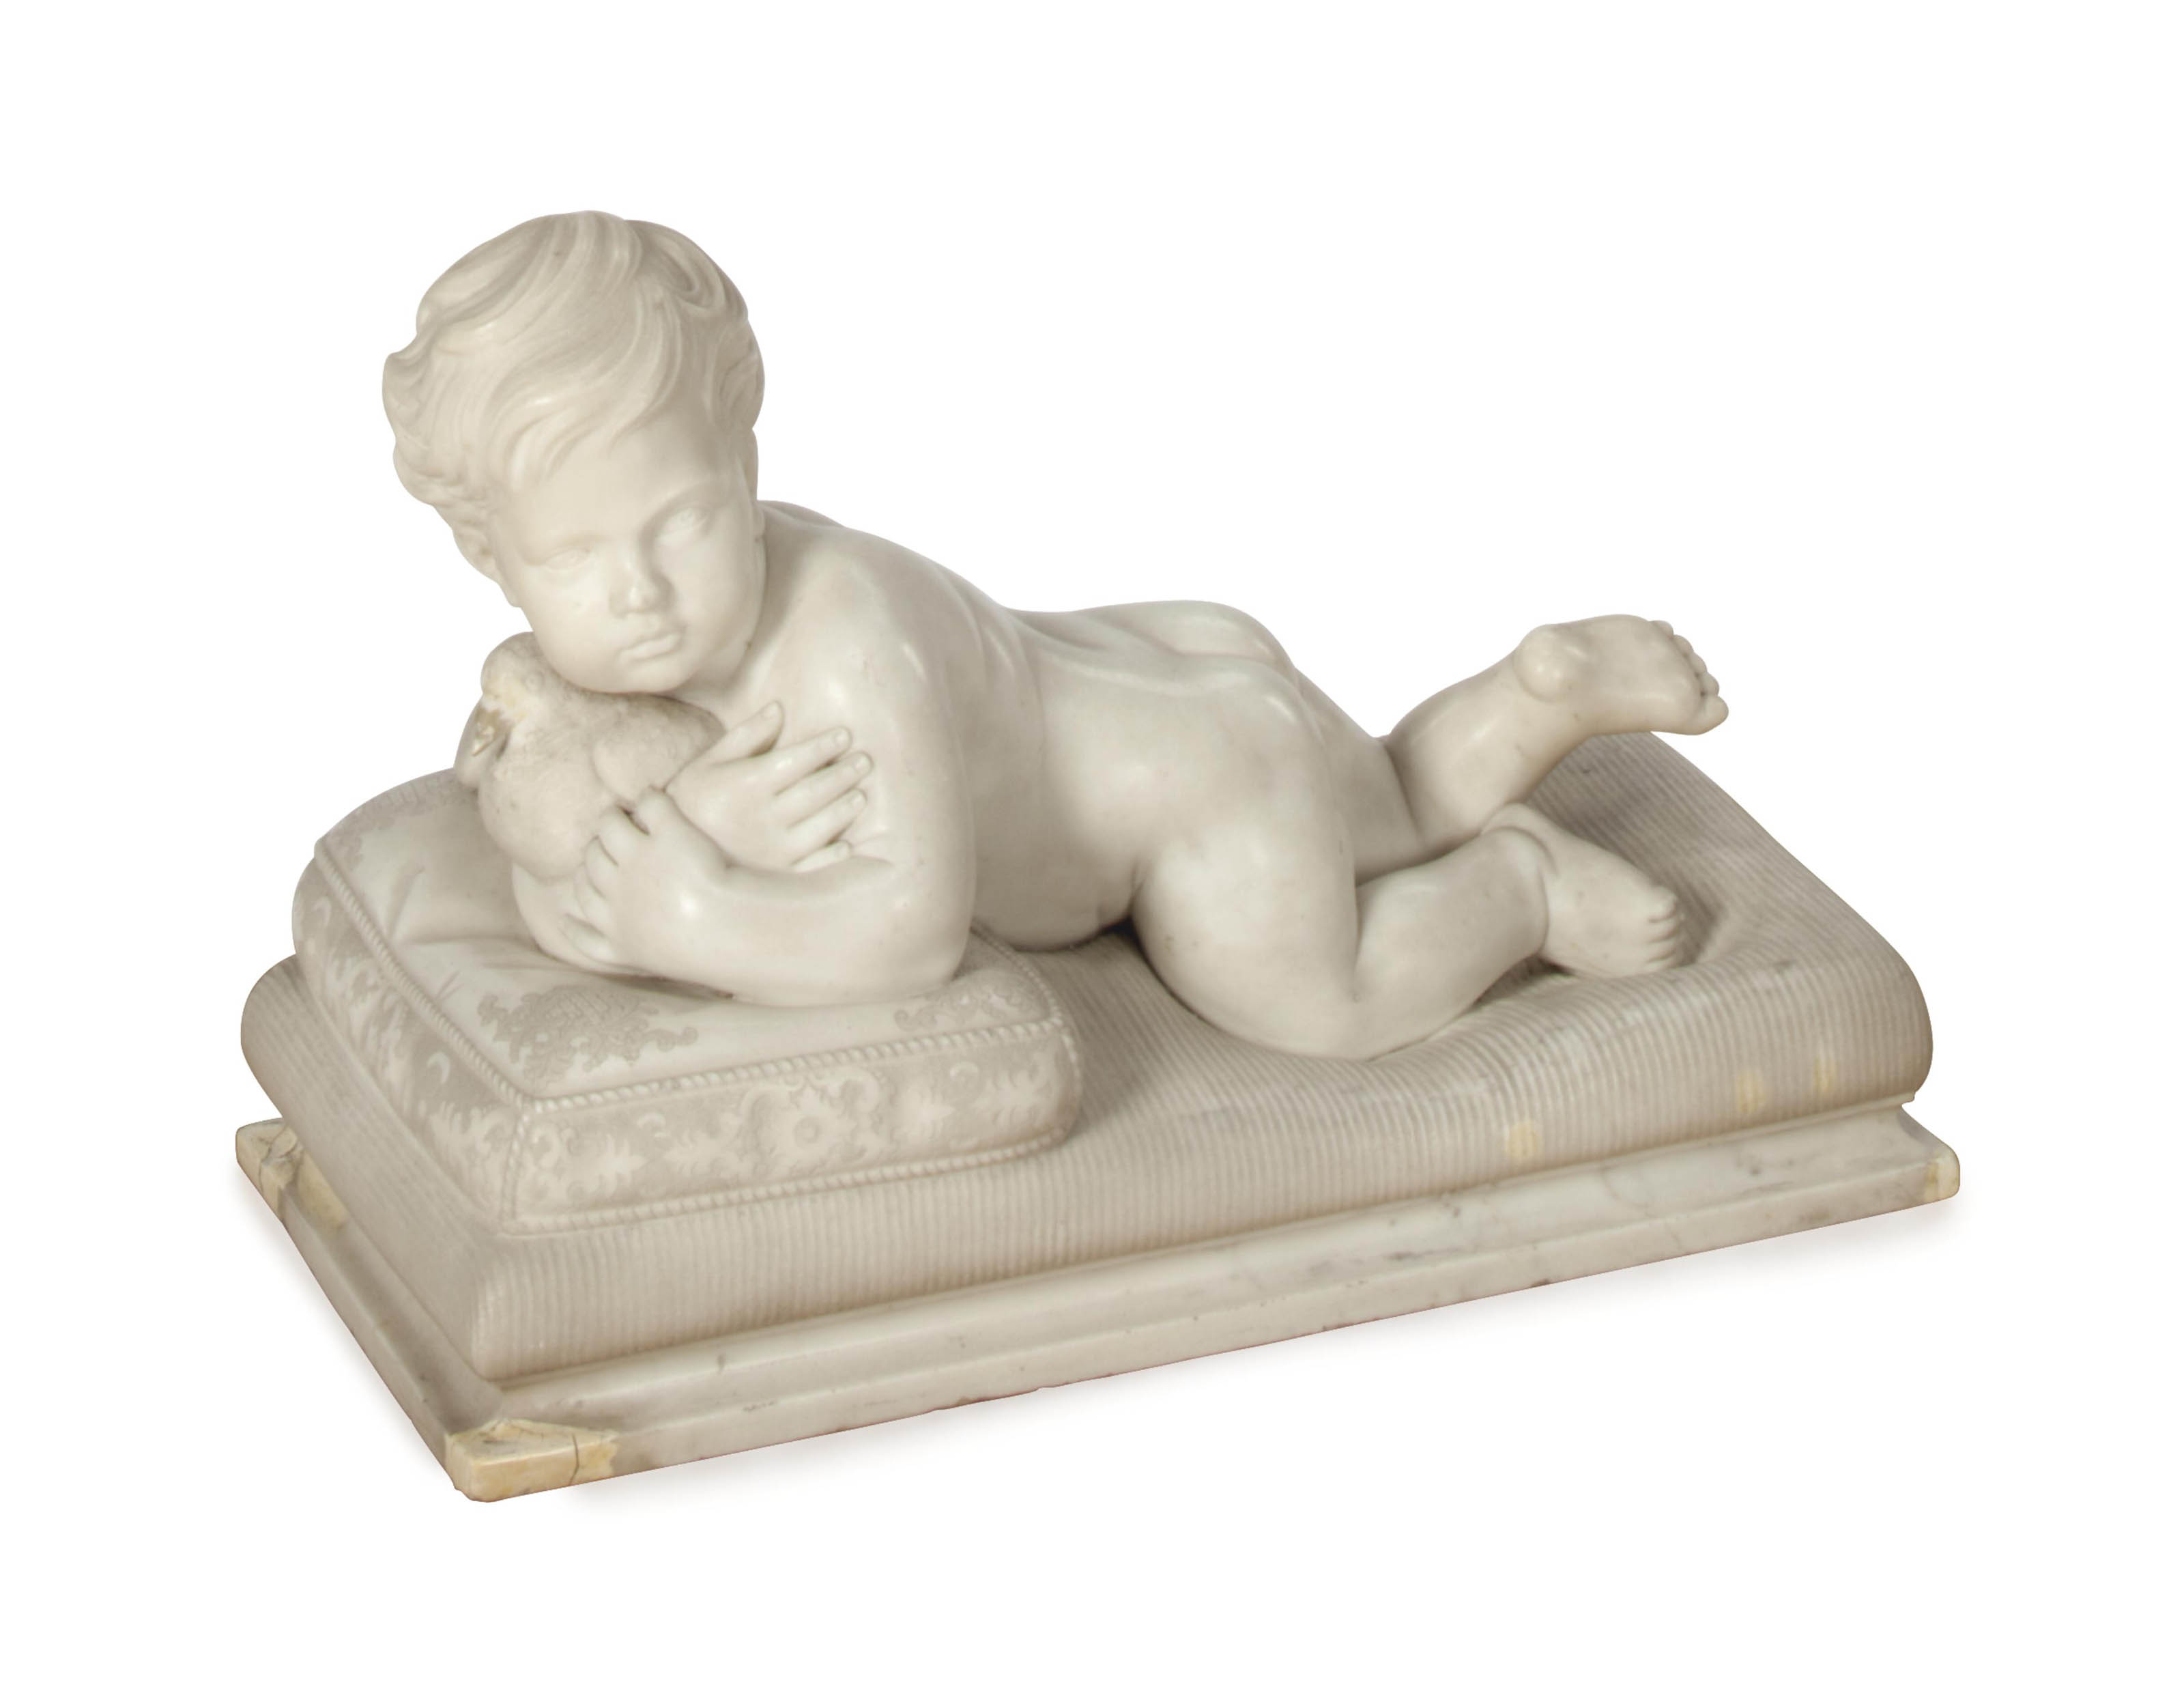 AN ITALIAN MARBLE FIGURAL GROUP OF A BOY WITH A DOVE ON A PILLOW,